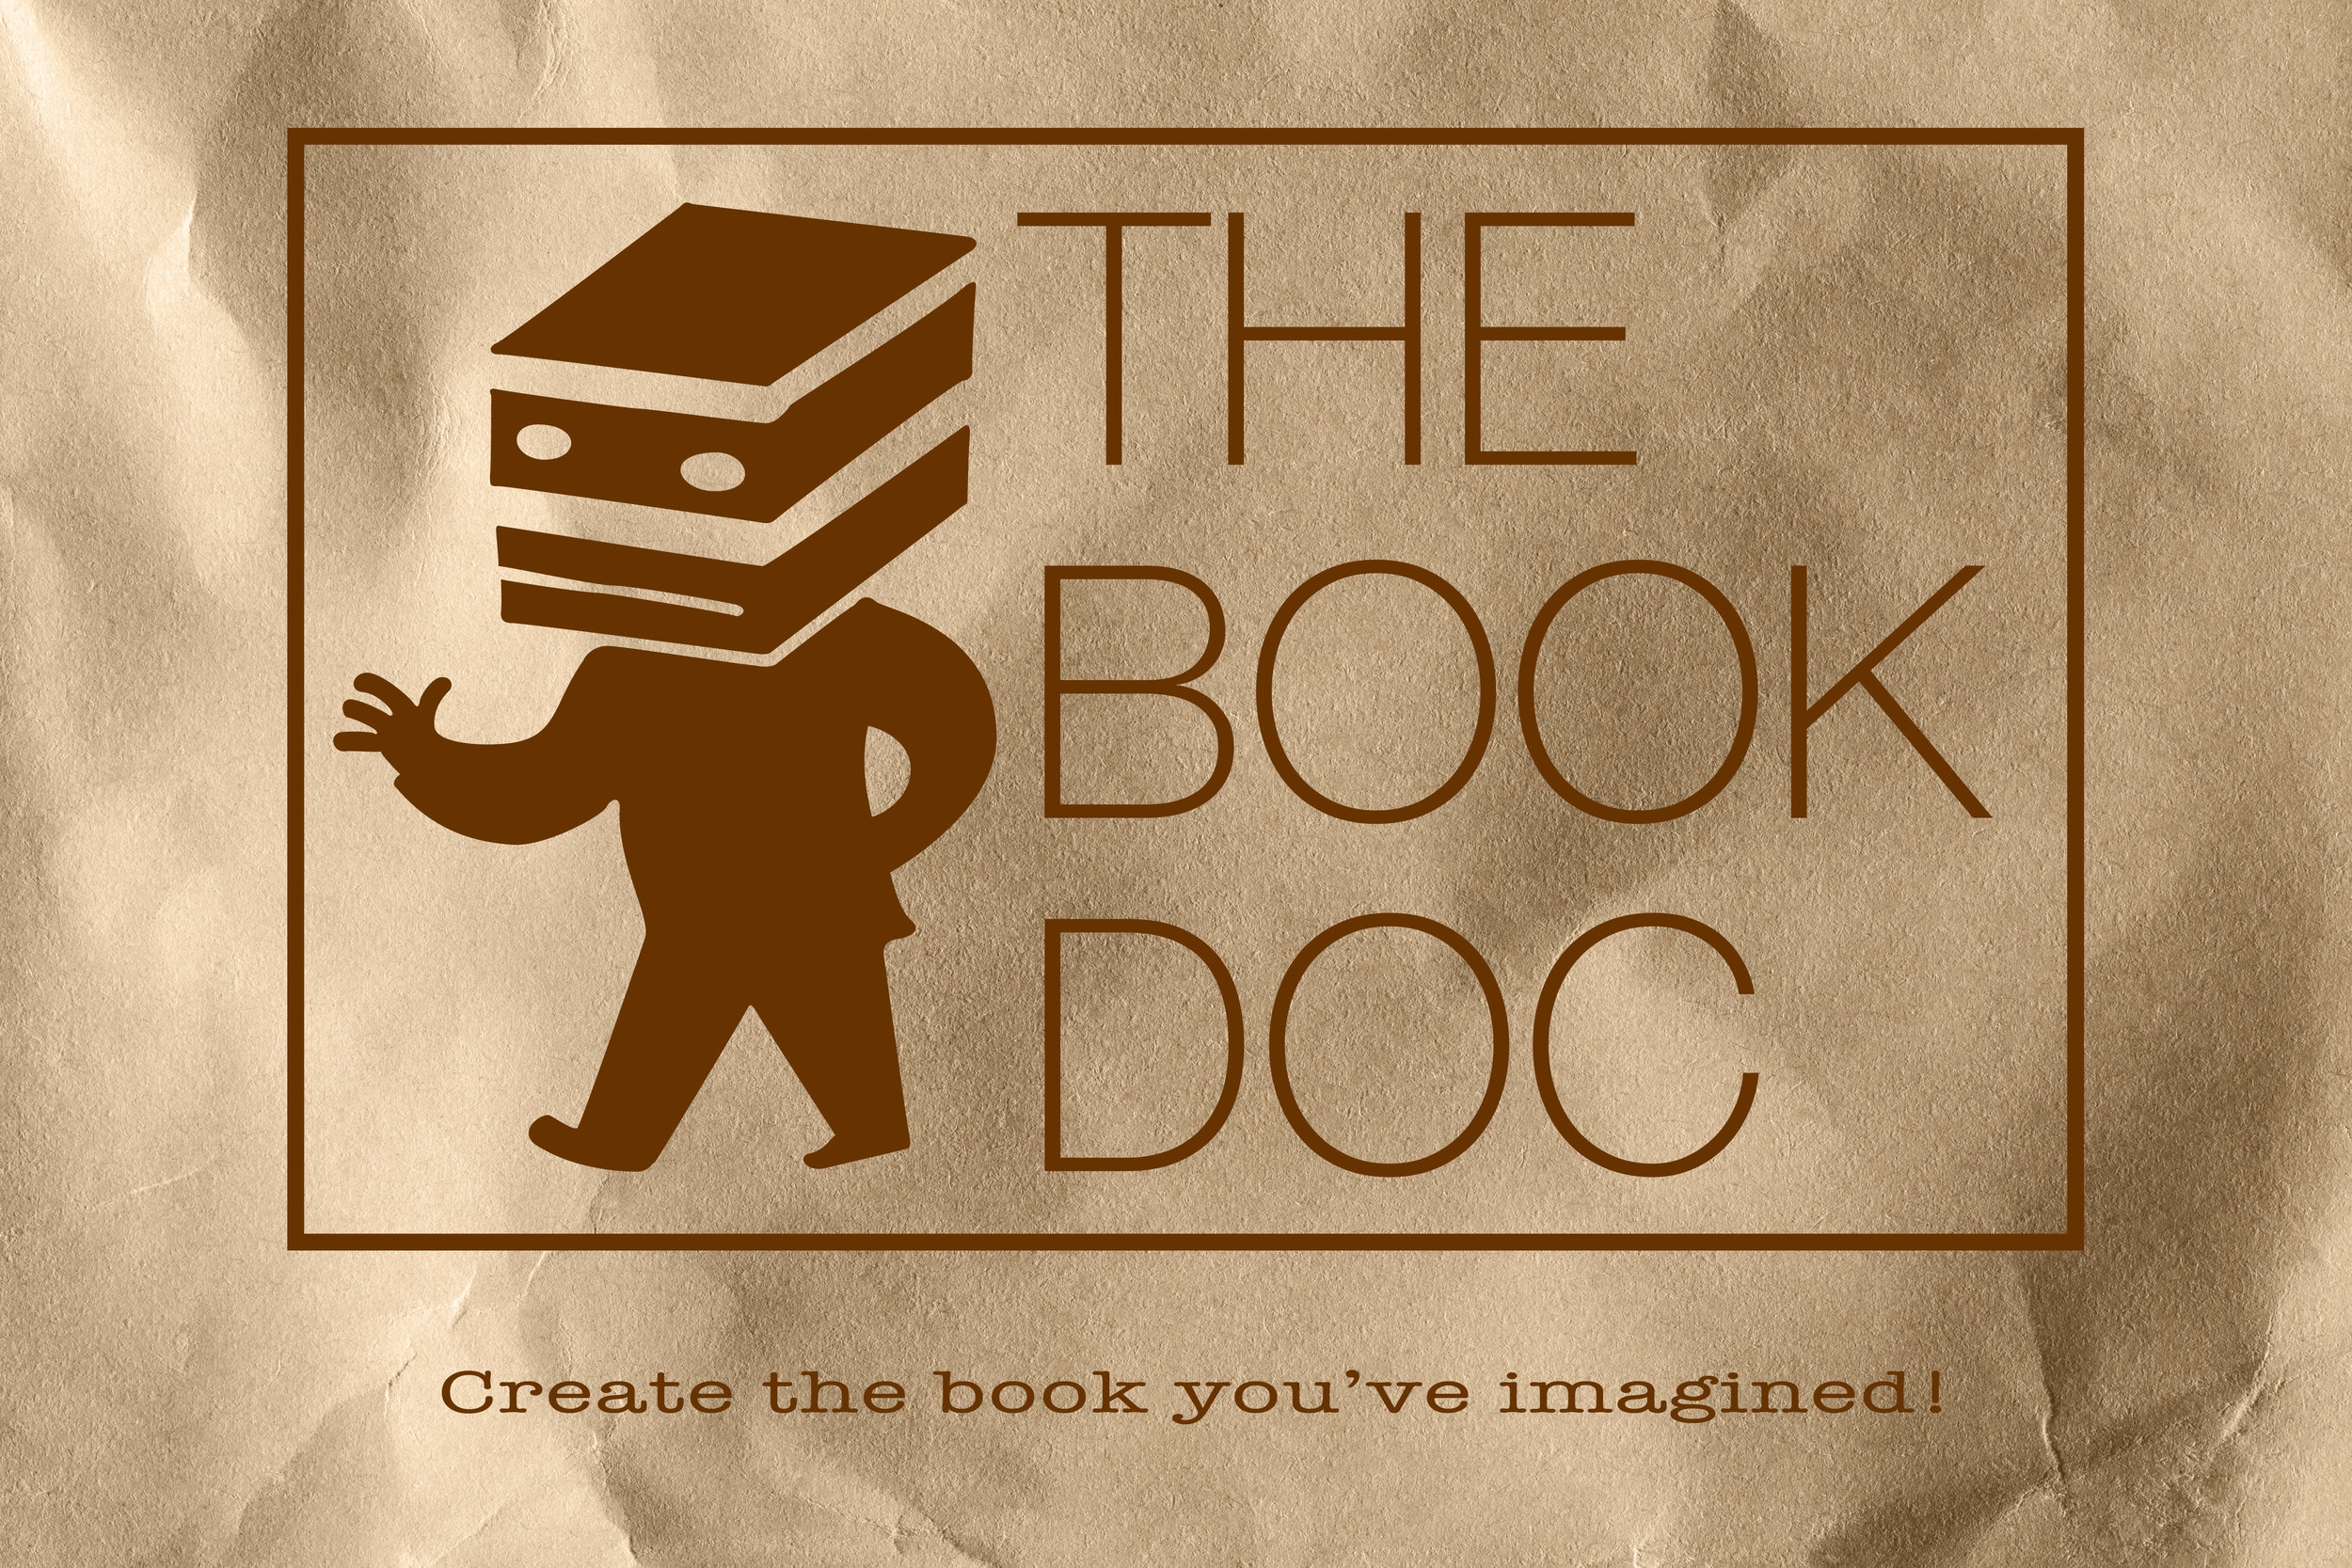 Create the book you've imagined - Contact the Book Doc for a free initial consultation